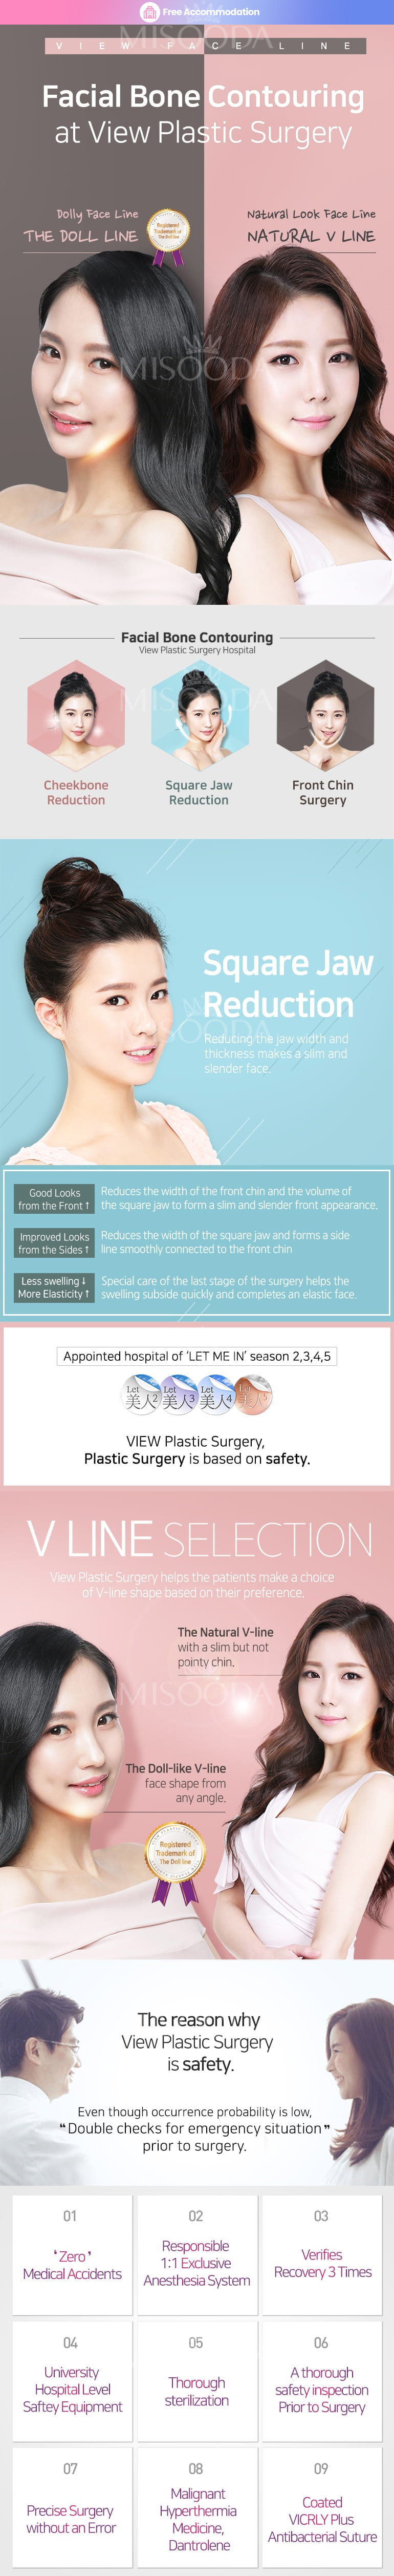 View Plastic Surgery : Square Jaw Reduction